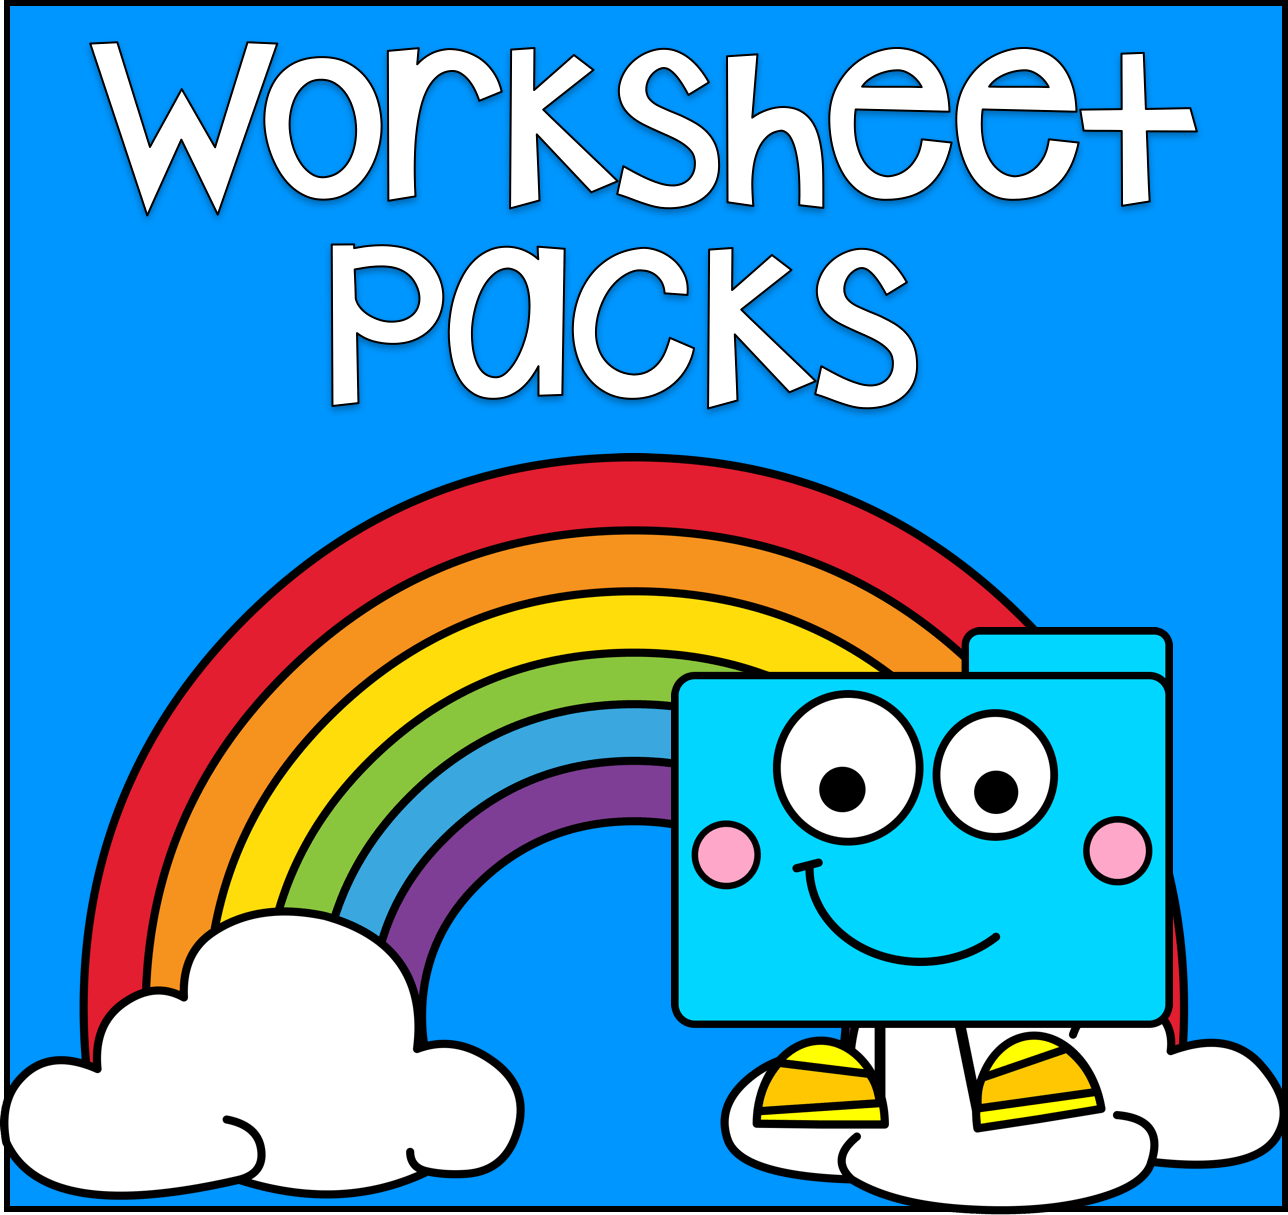 Worksheet Packs File Folder Games At File Folder Heaven